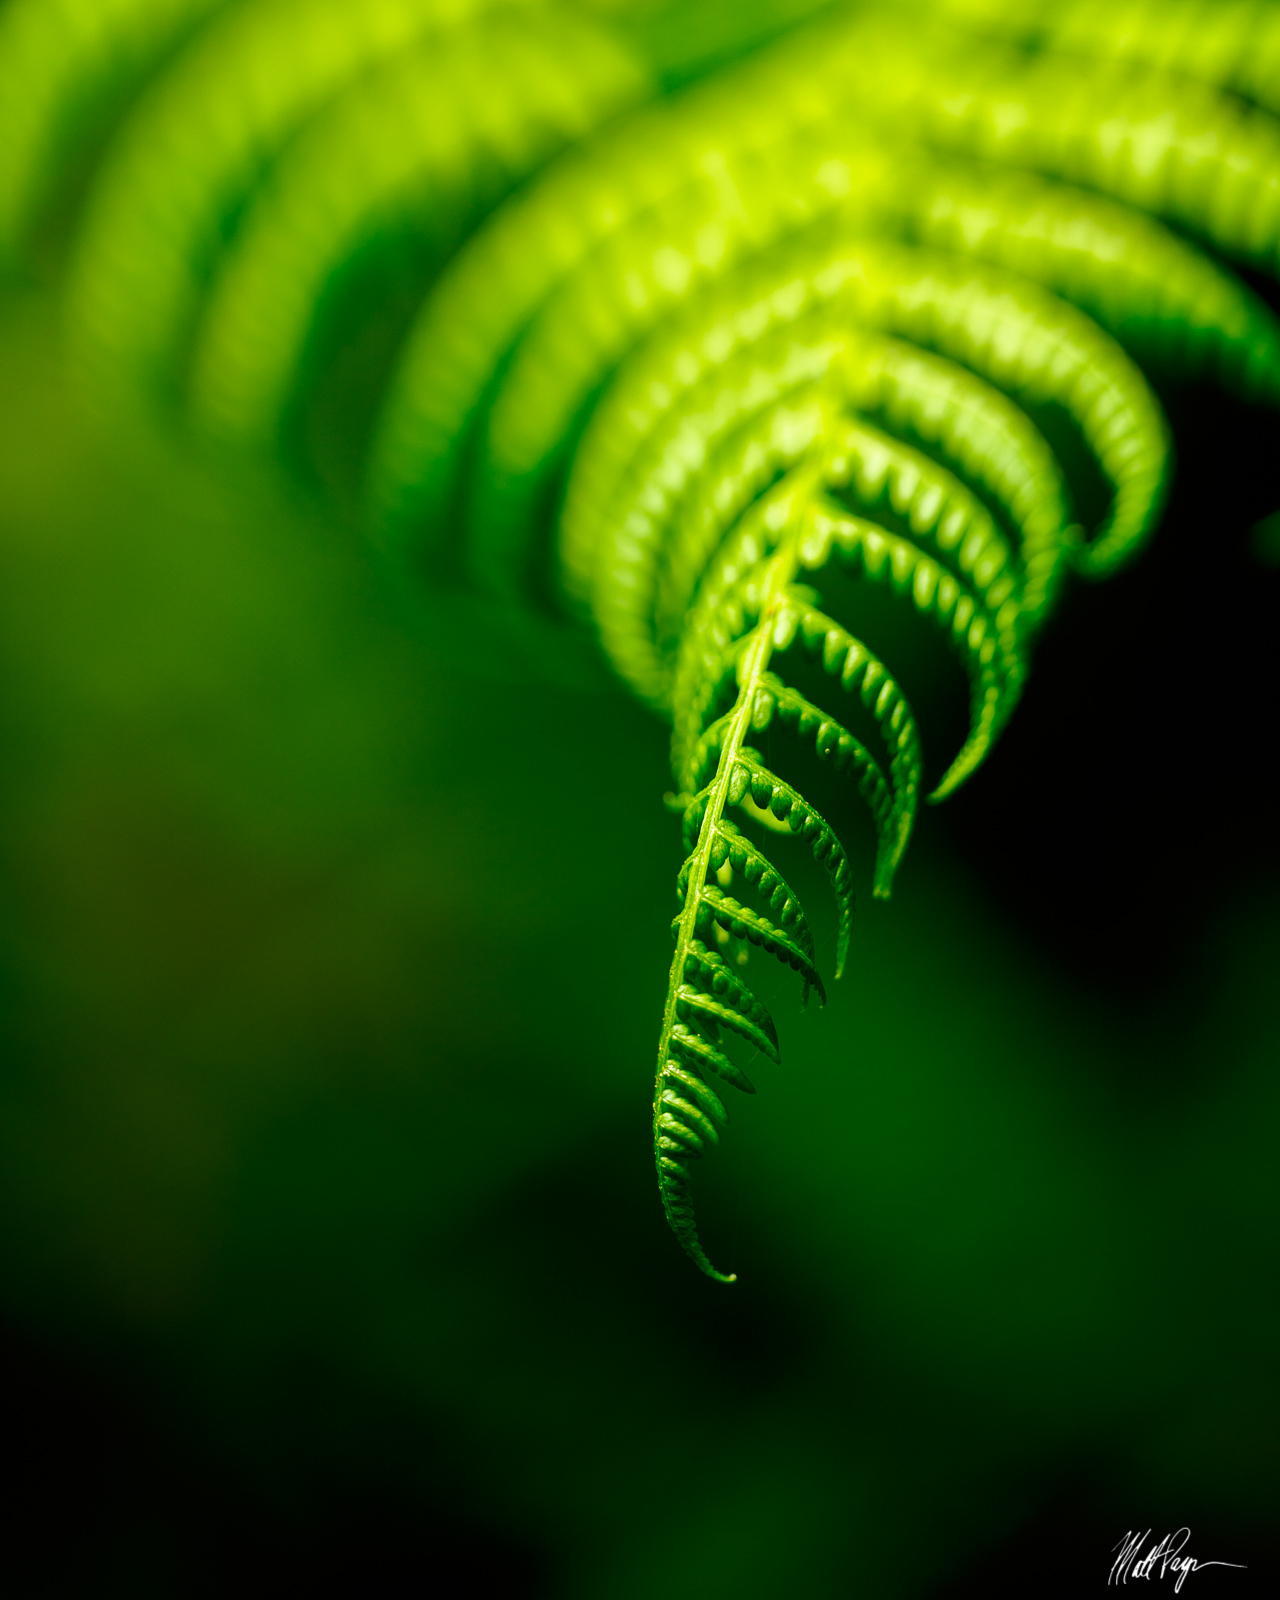 One of the most elegant subjects to photograph in the Redwoods of California are the ubiquitous ferns found all over the understory...